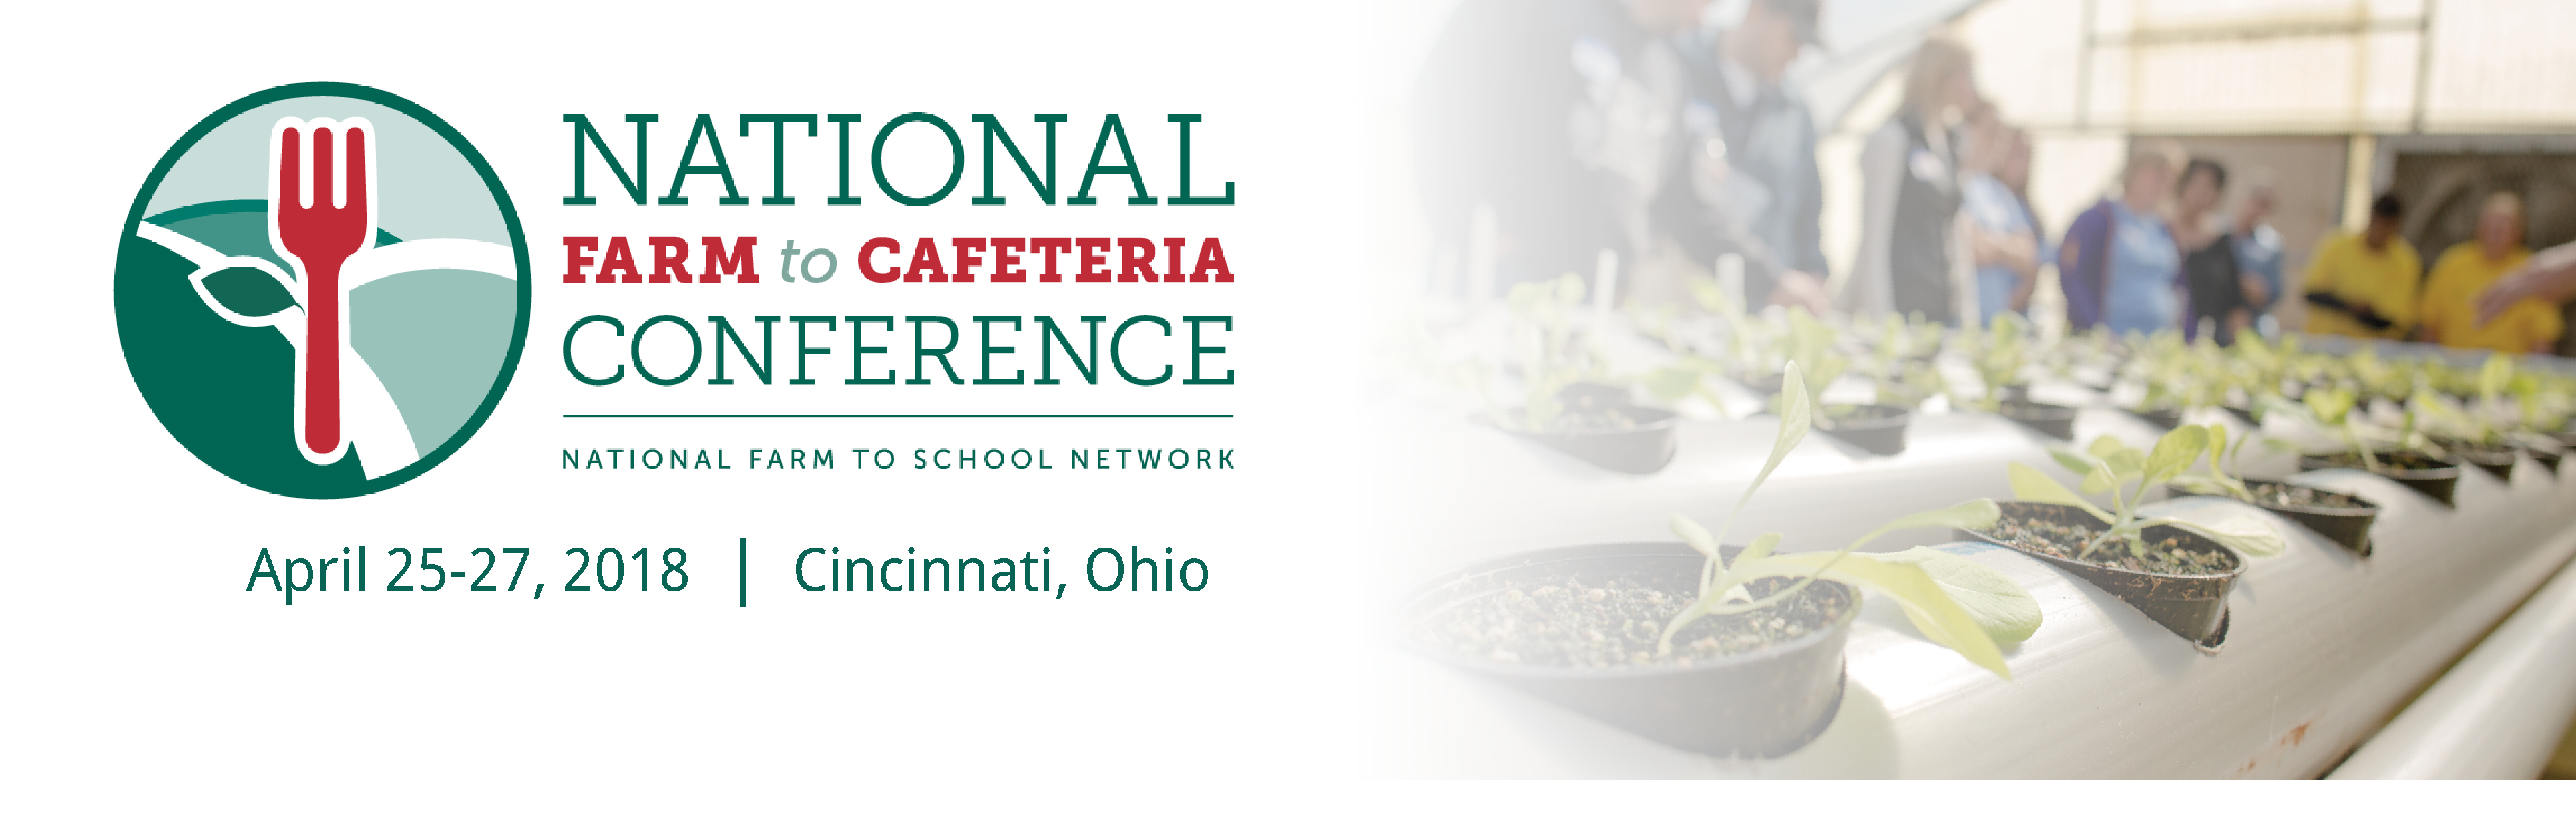 9th National Farm to Cafeteria Conference